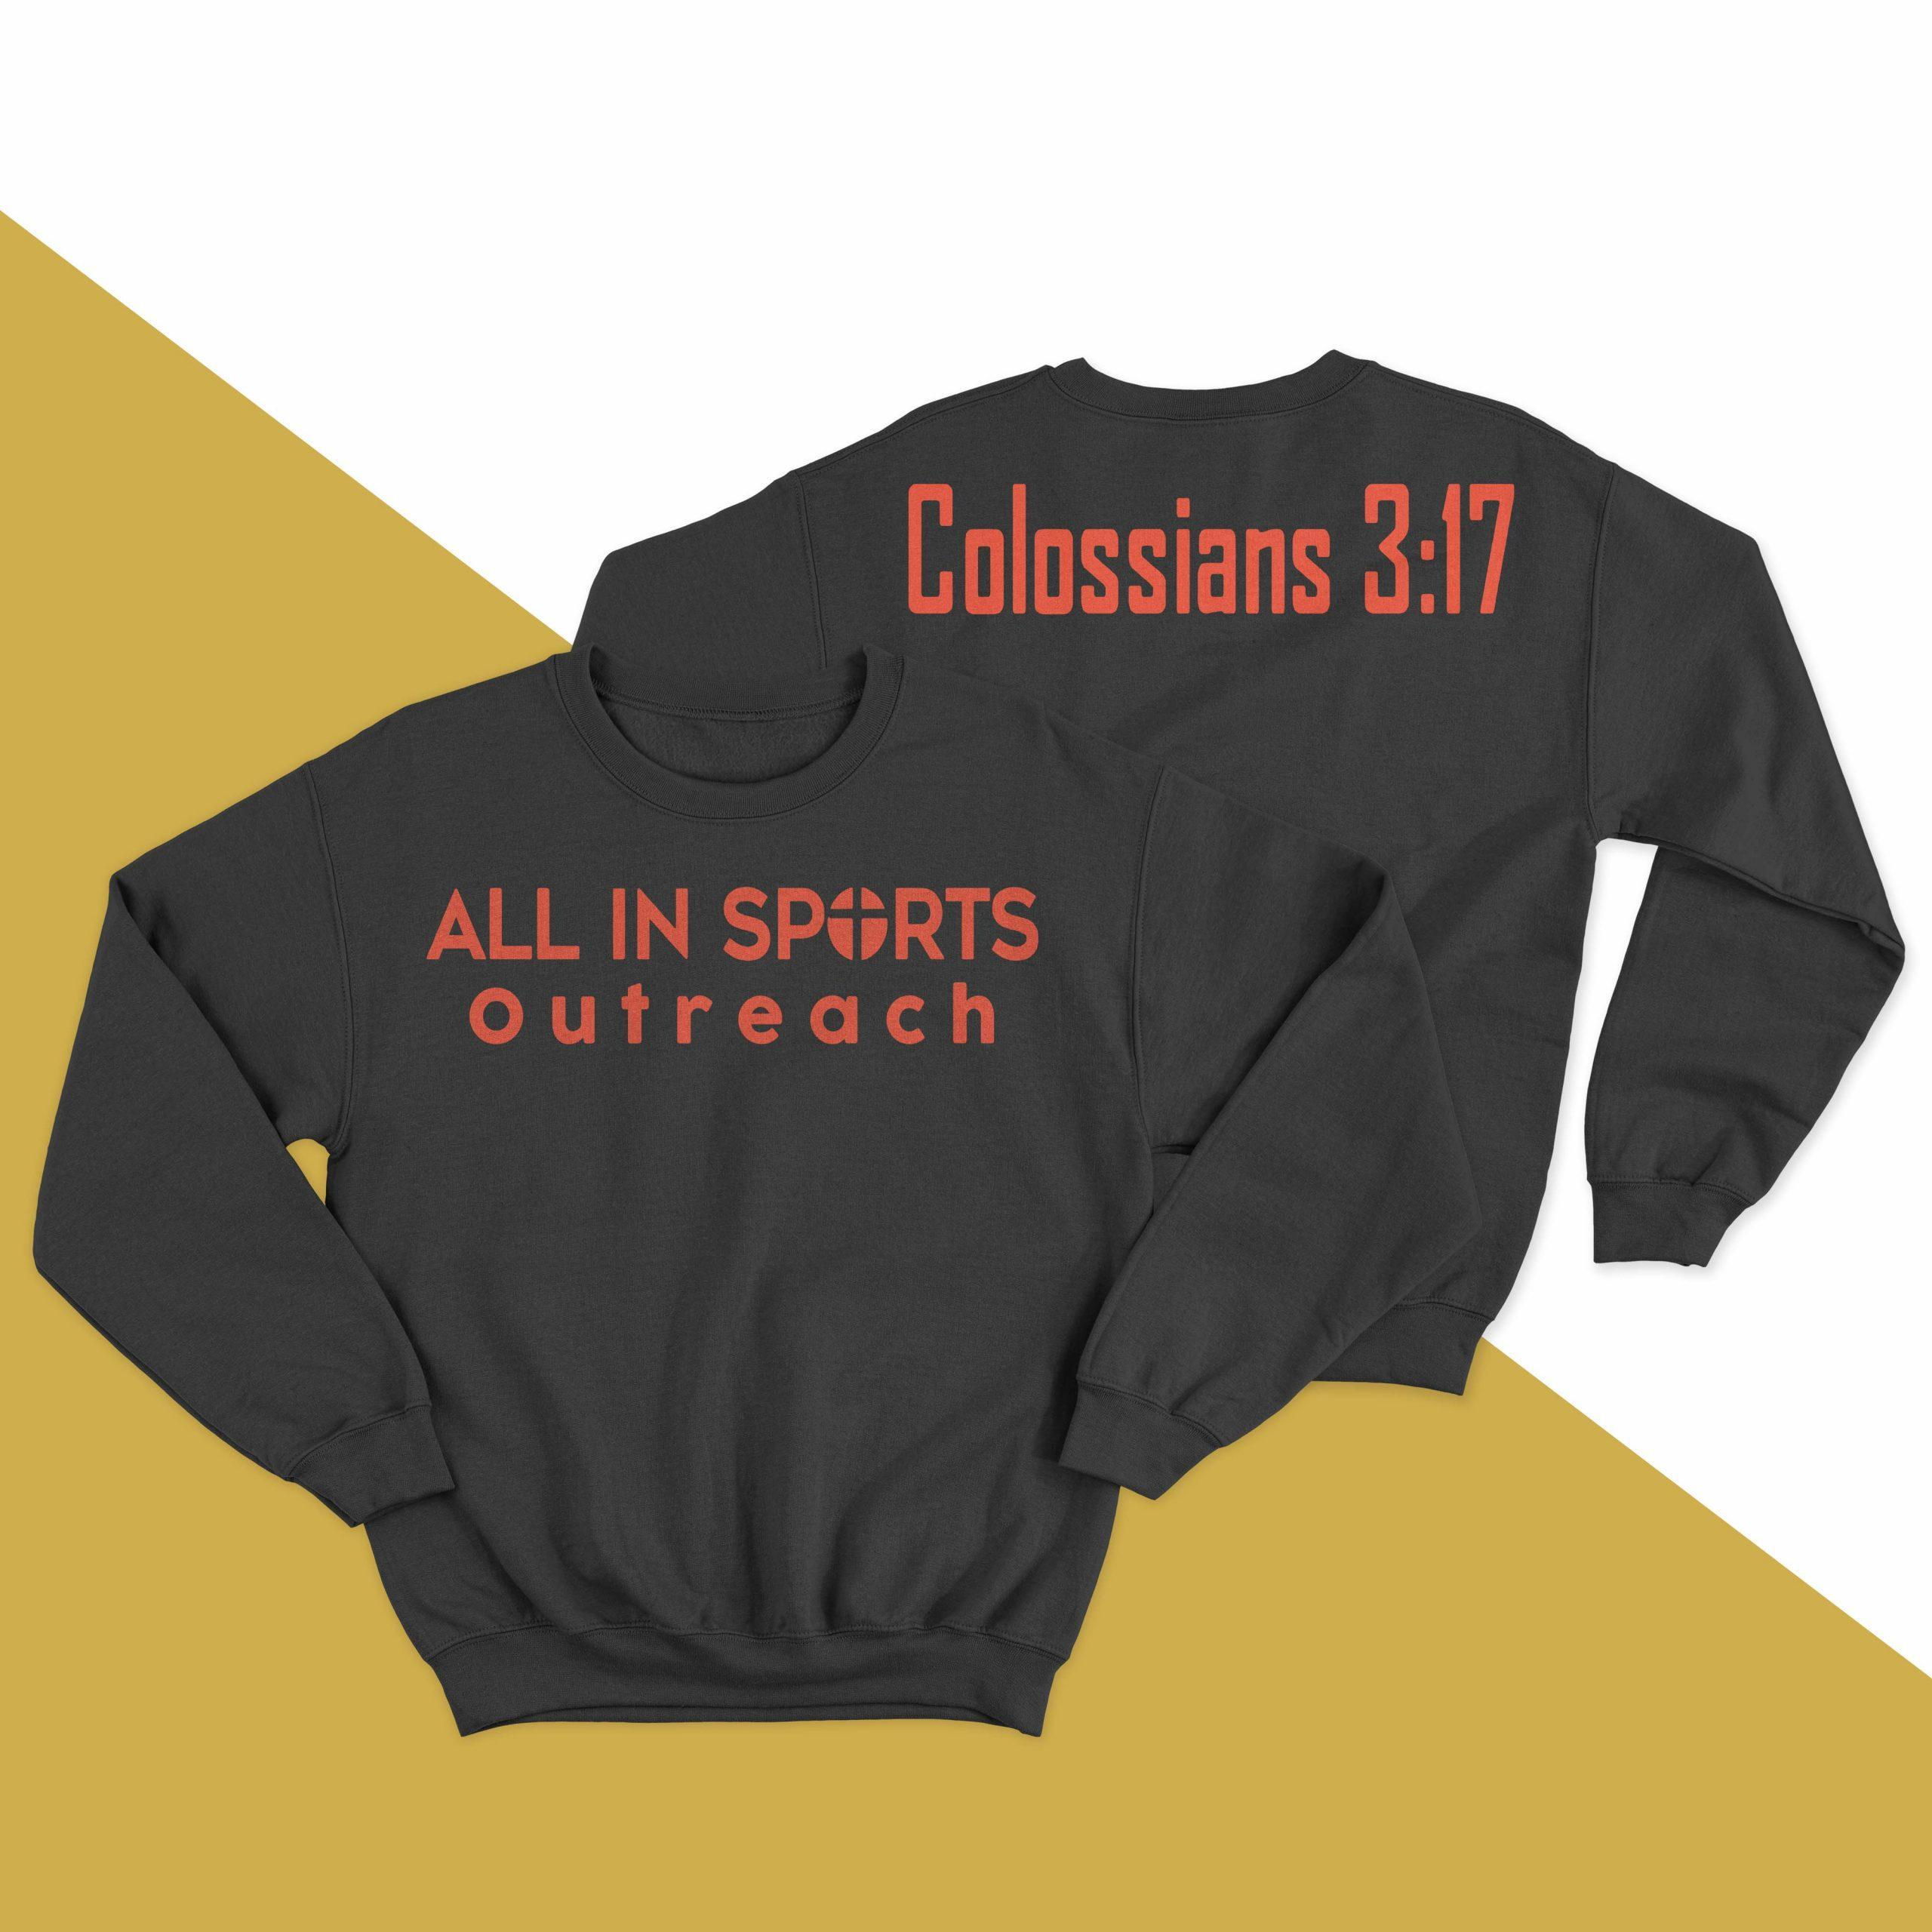 All In Sports Outreach Colossians 3 17 Longsleeve